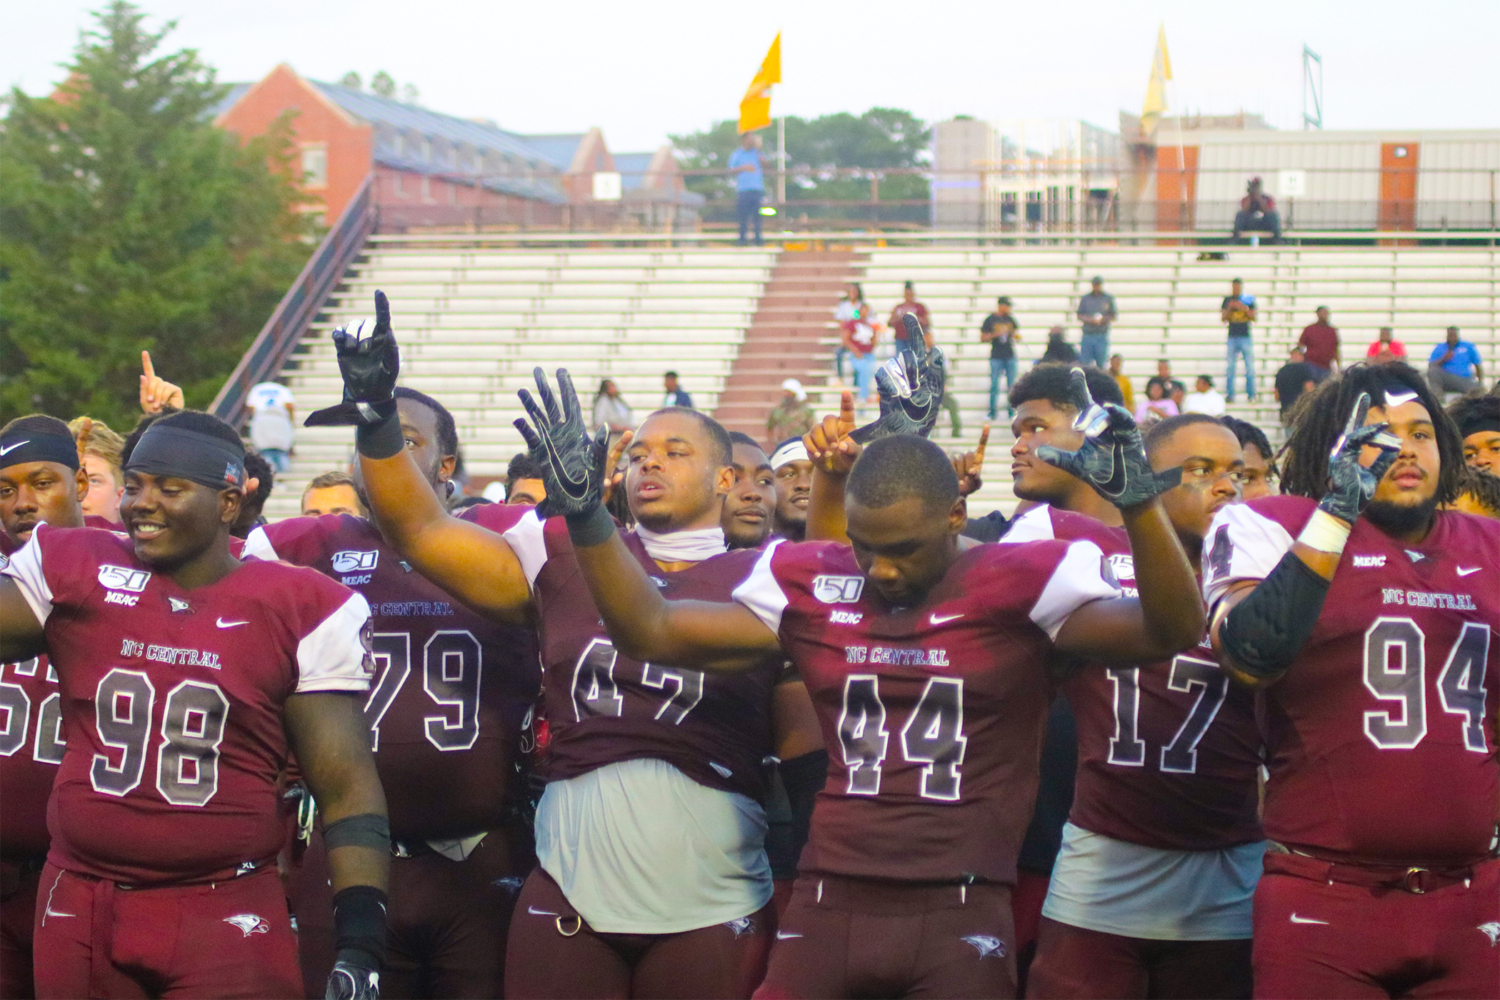 NCCU-wins-first-game-of-the-season-1-e1571154472155.jpg?time=1571251551